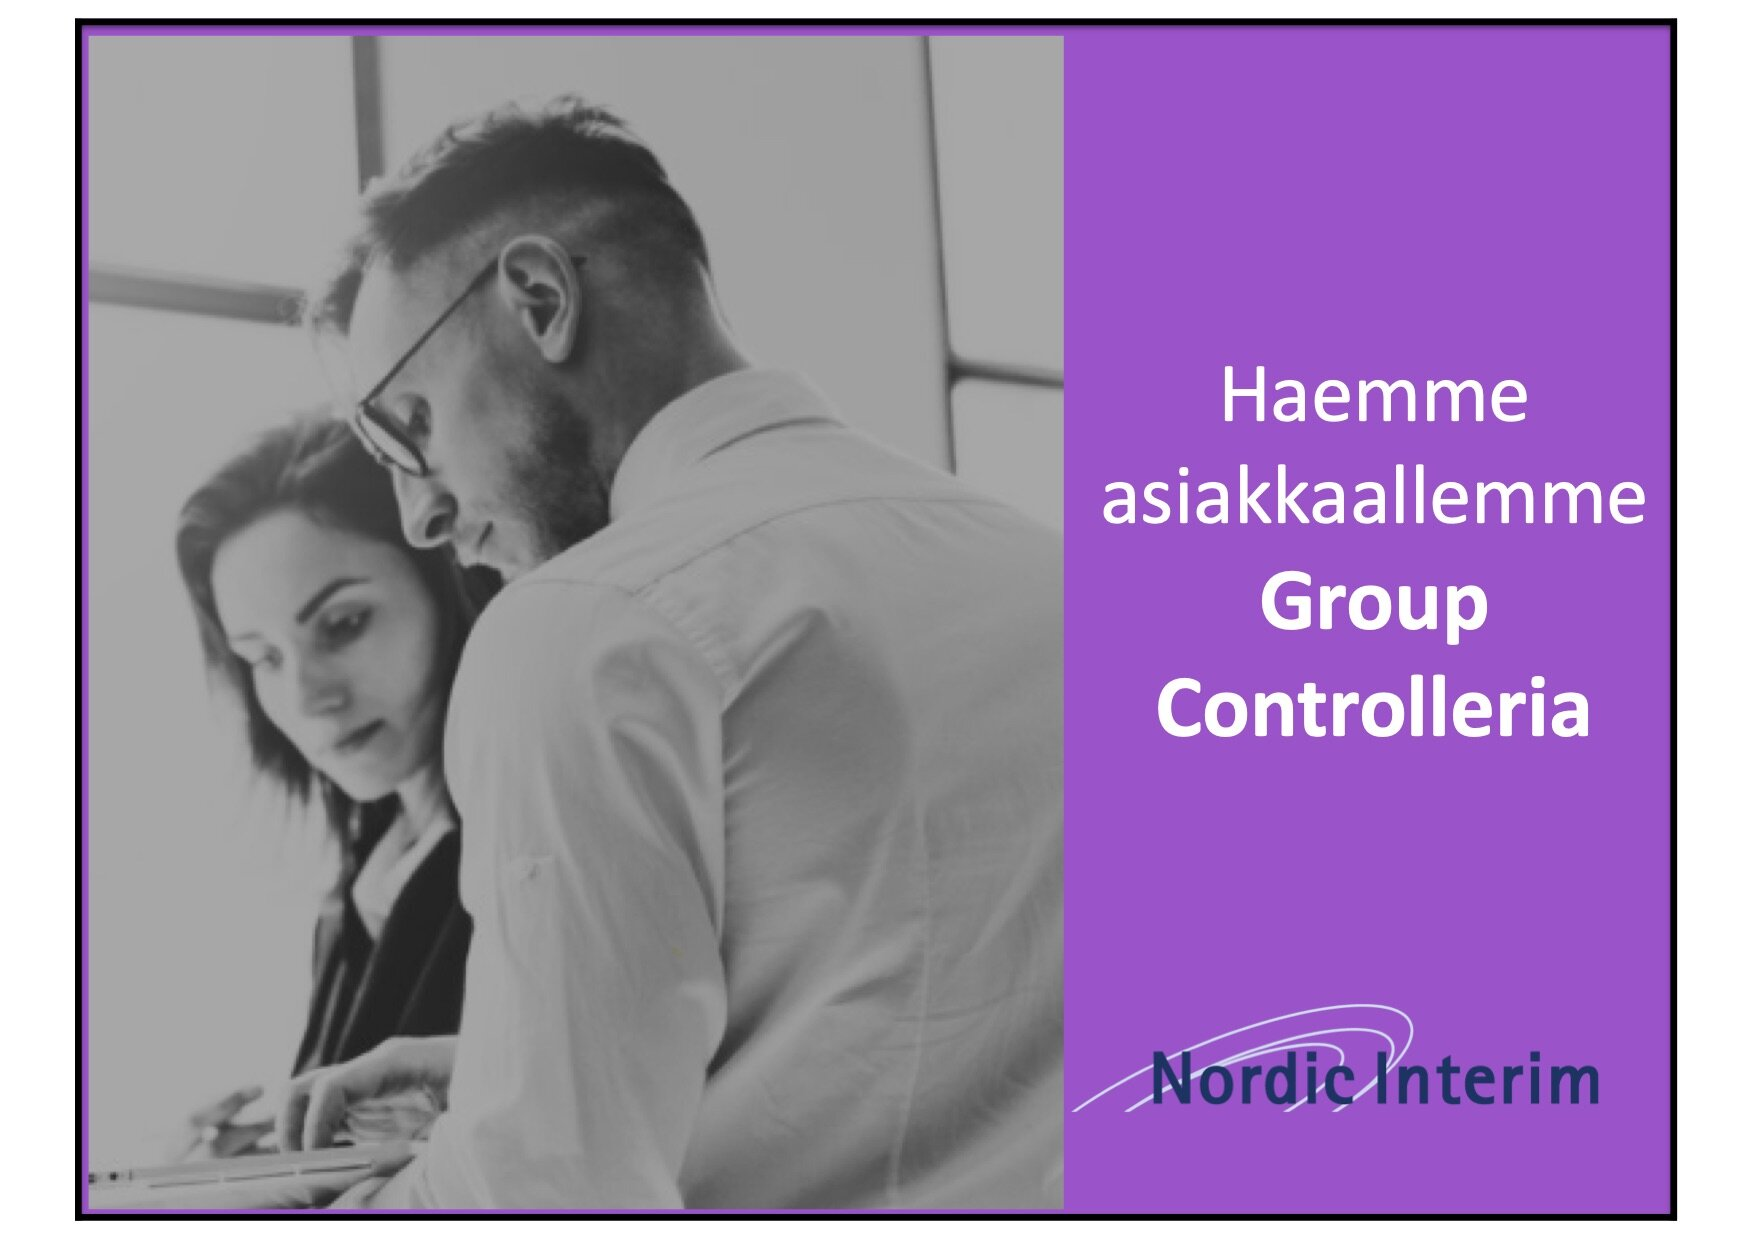 Haemme asiakkaallemme Group Controlleria